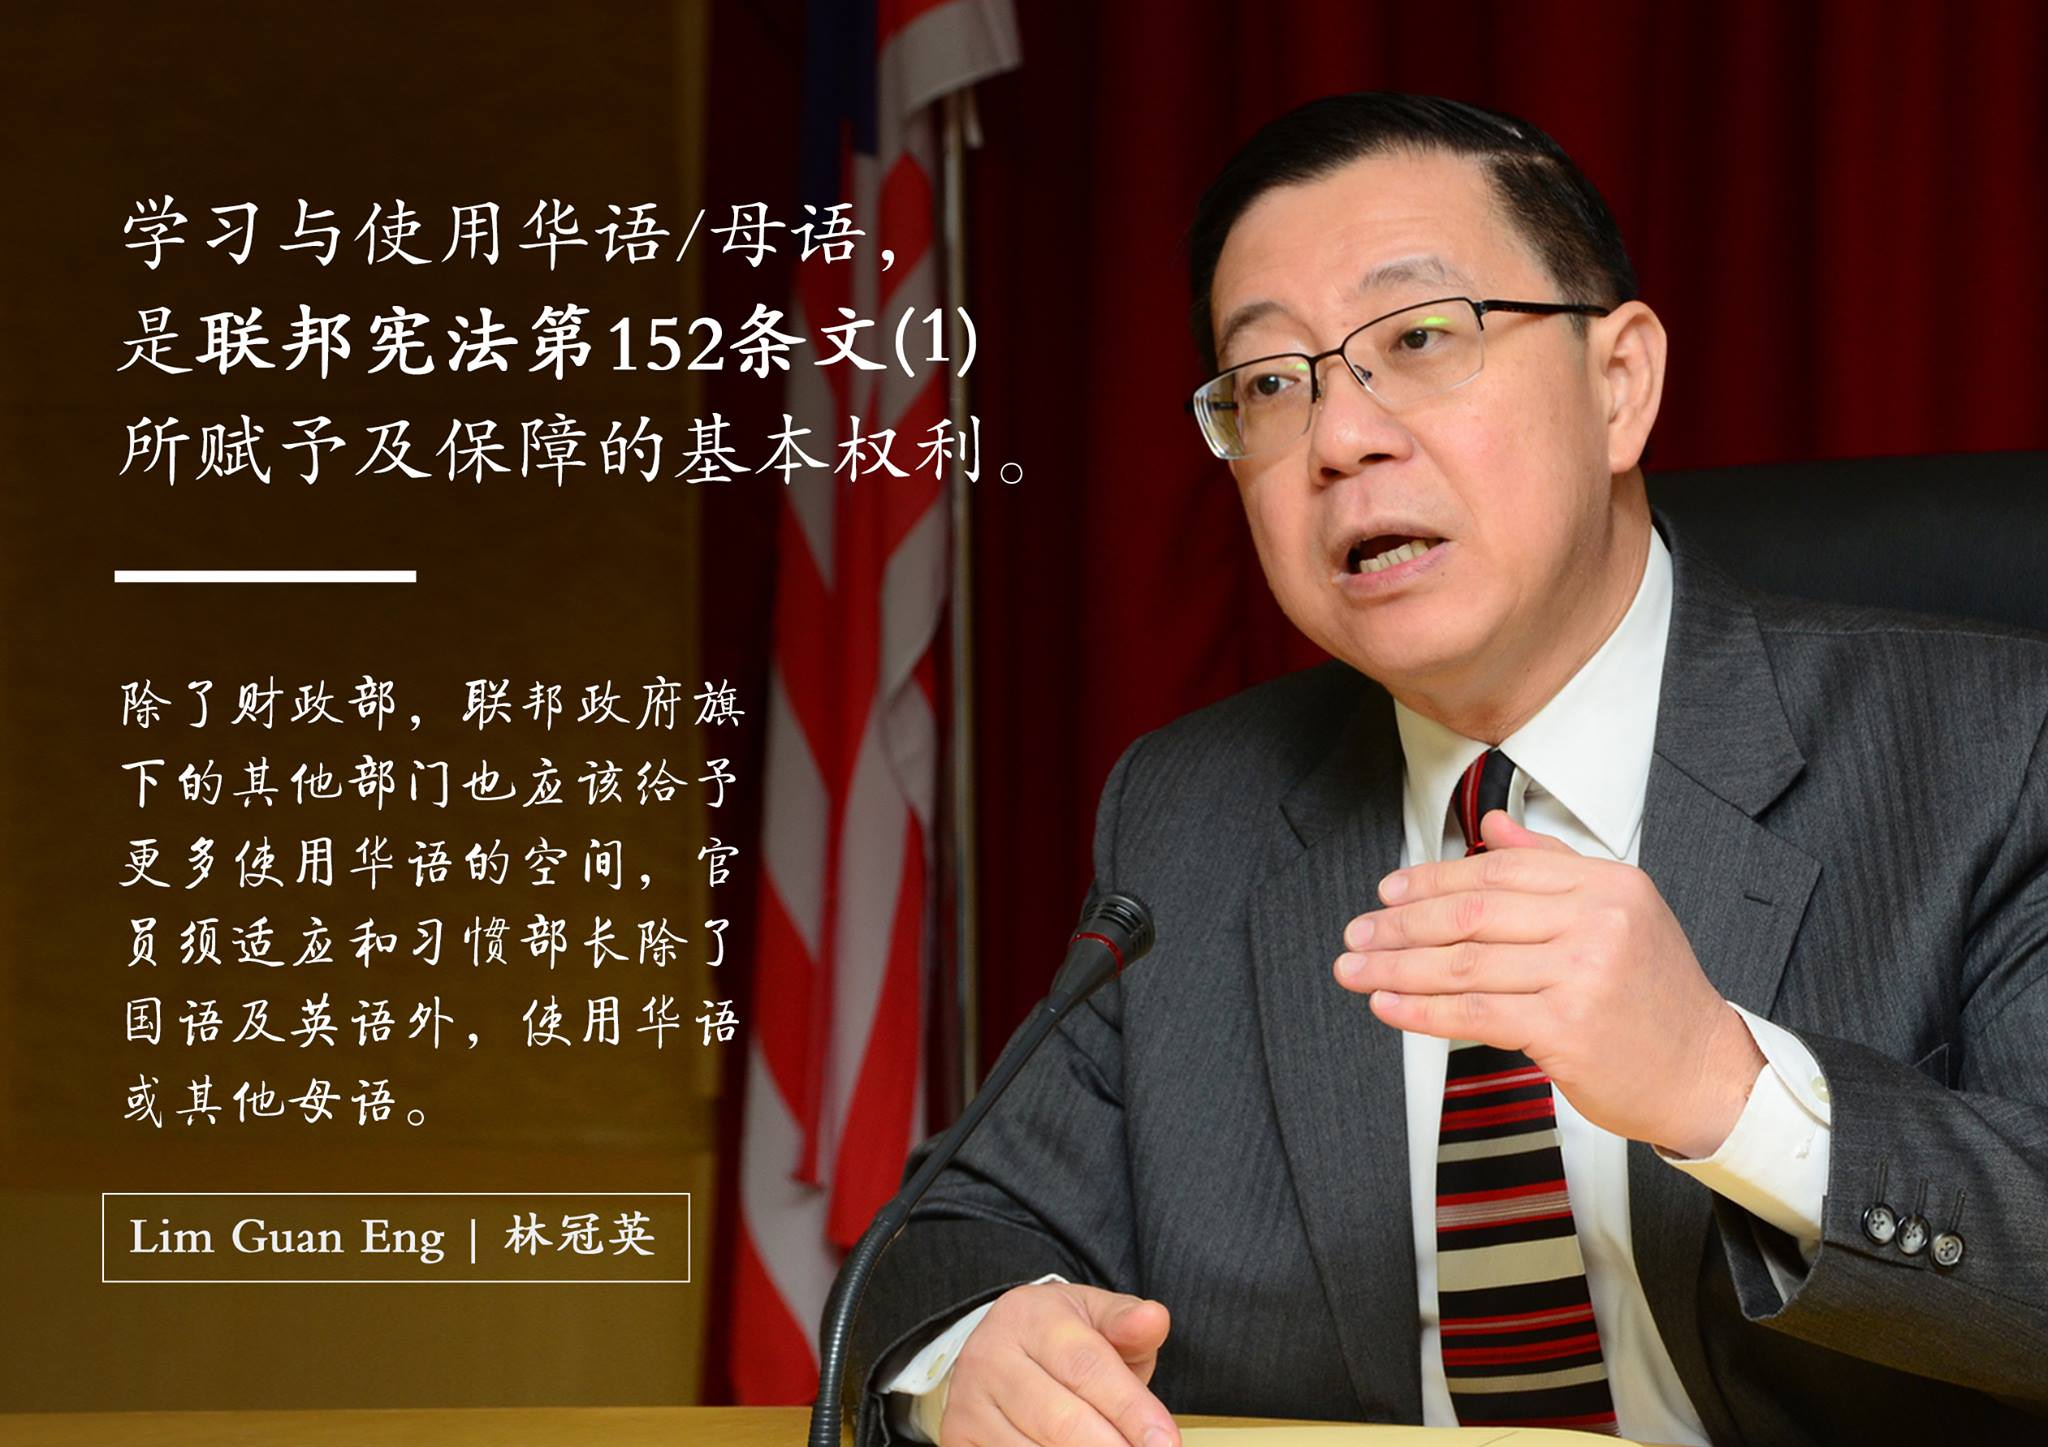 Image from Lim Guan Eng